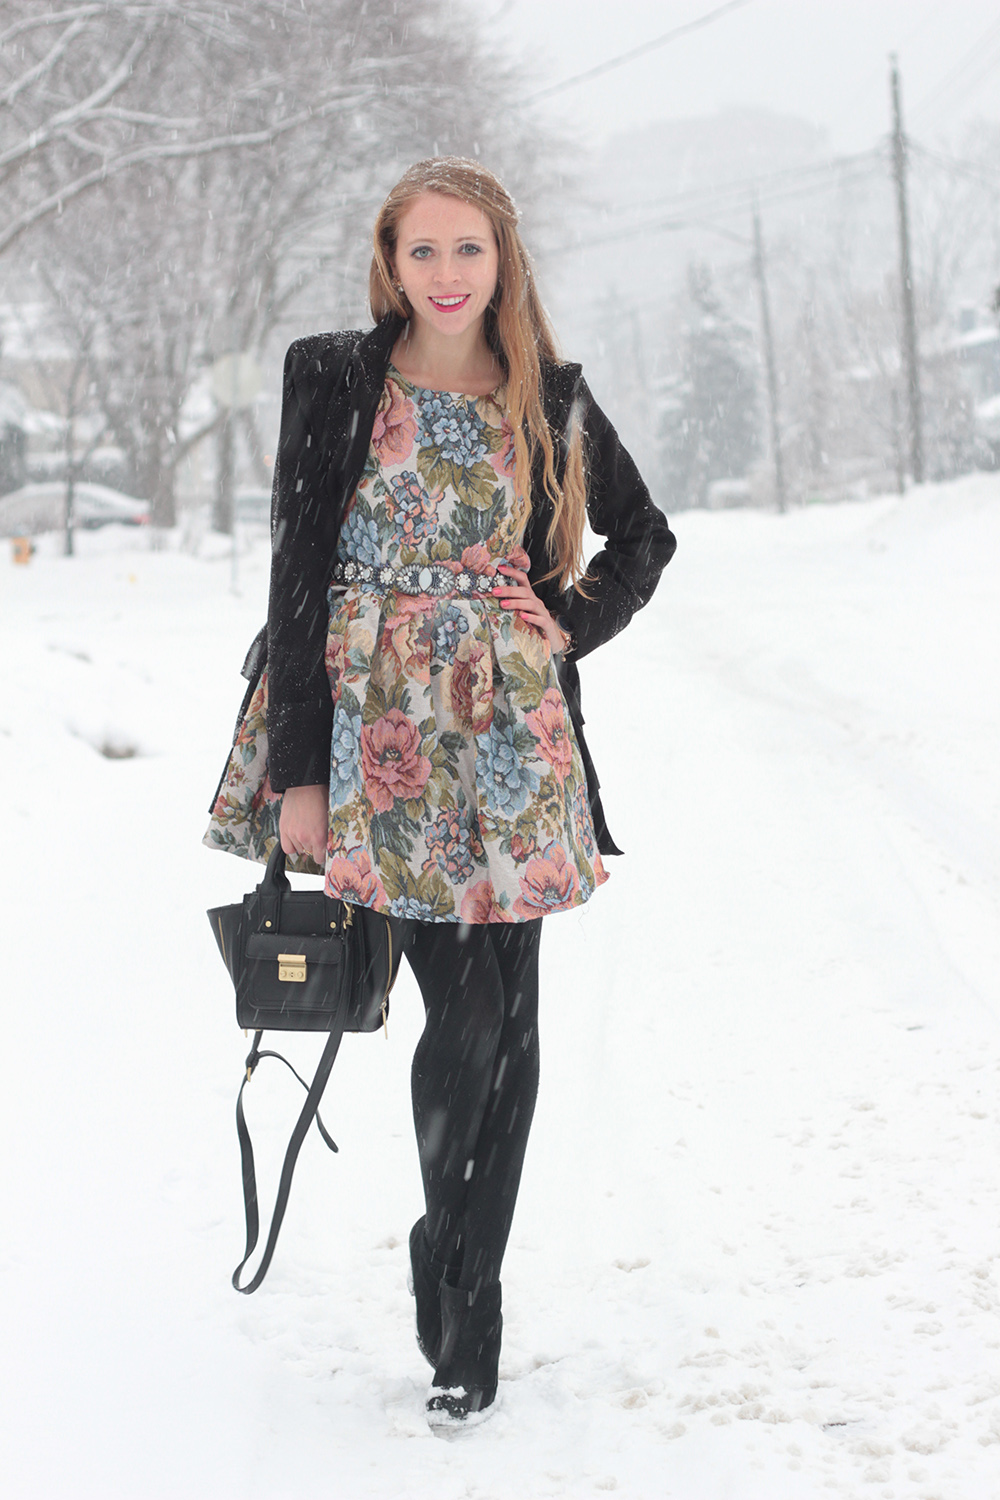 floral dress in winter